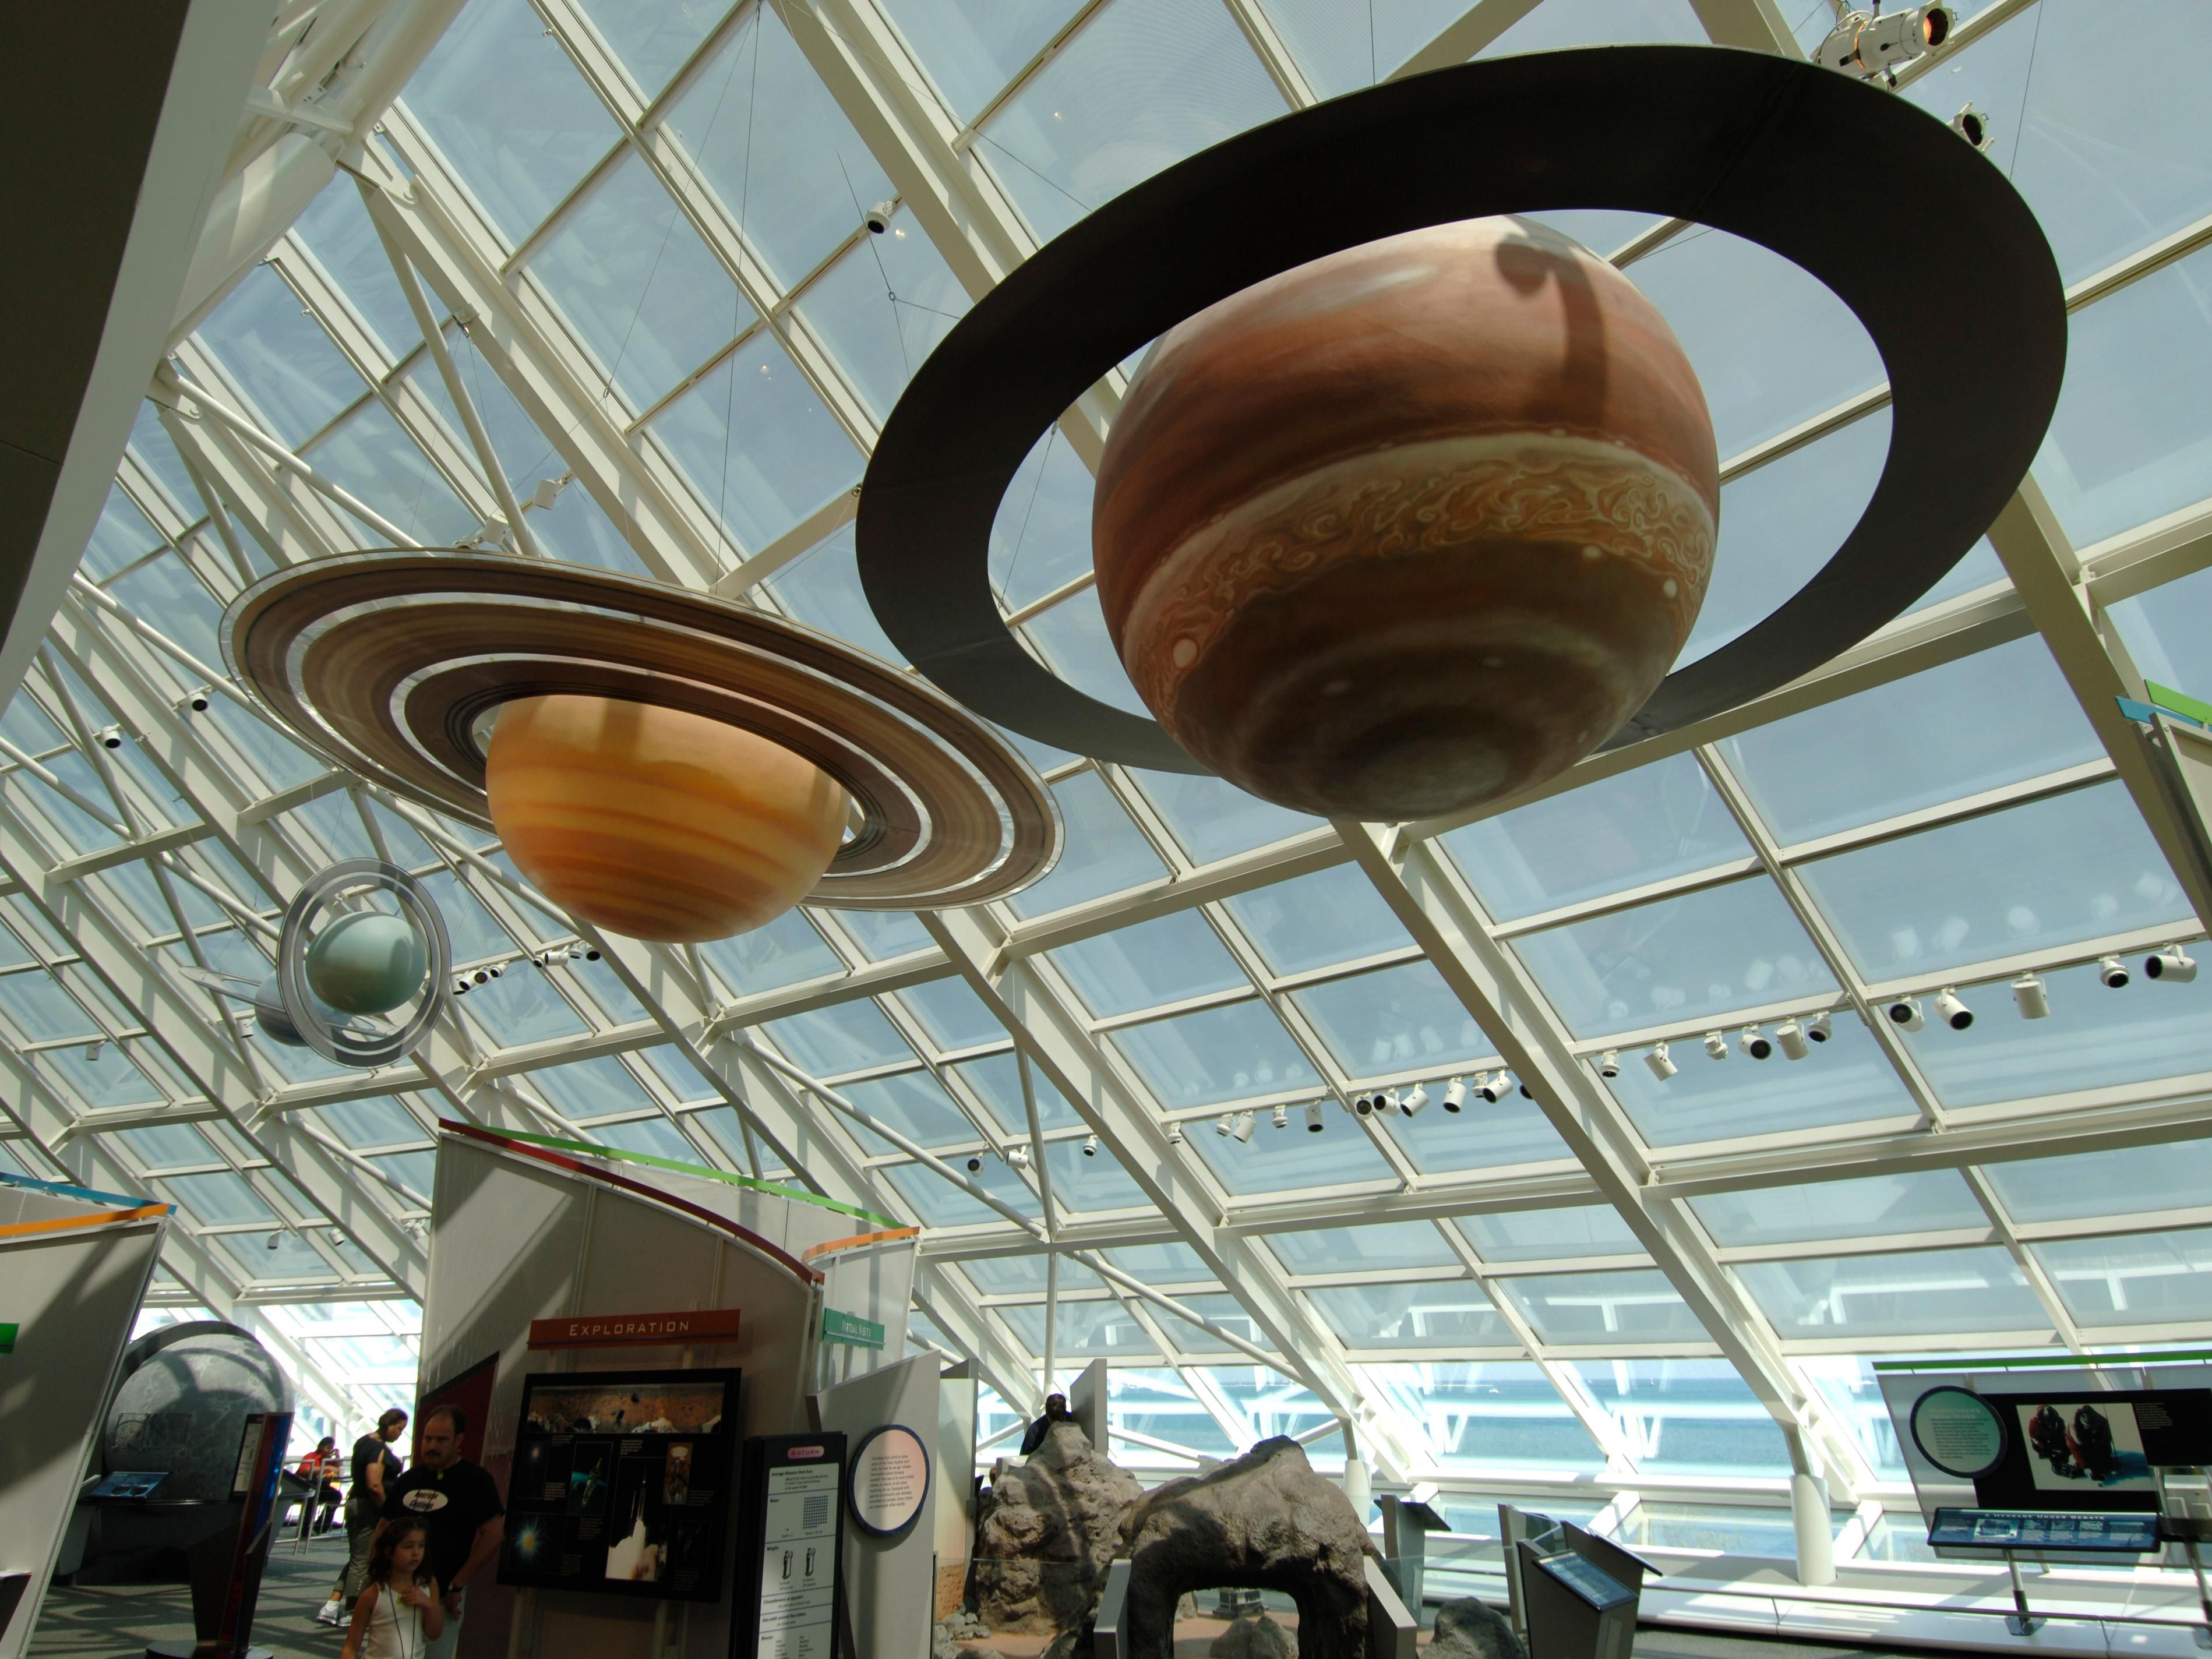 Adler Planetarium located in Chicago at the Museum Campus